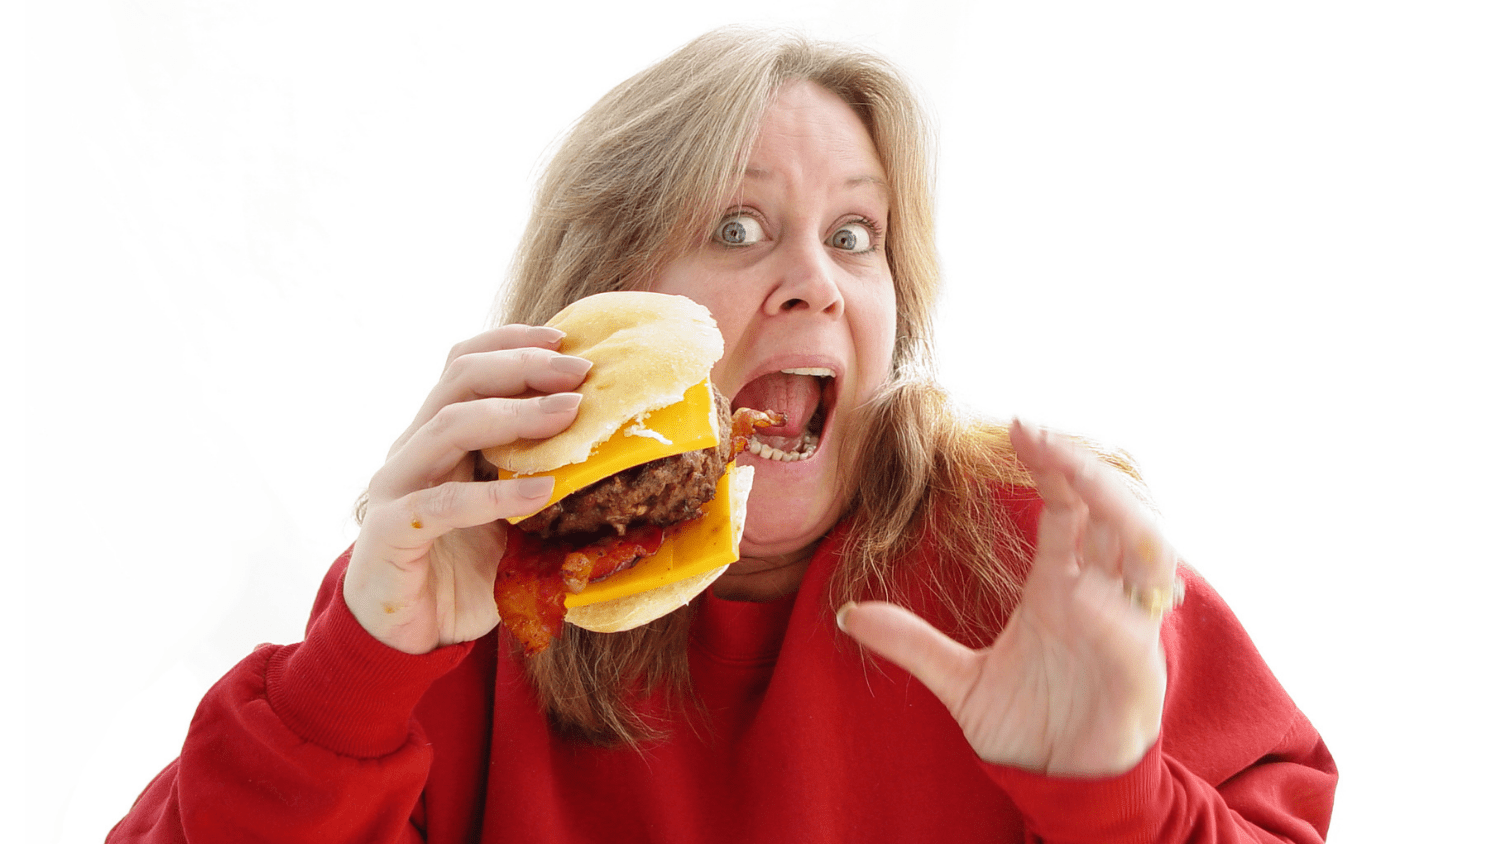 5 Ways to Control Your Binge Eating